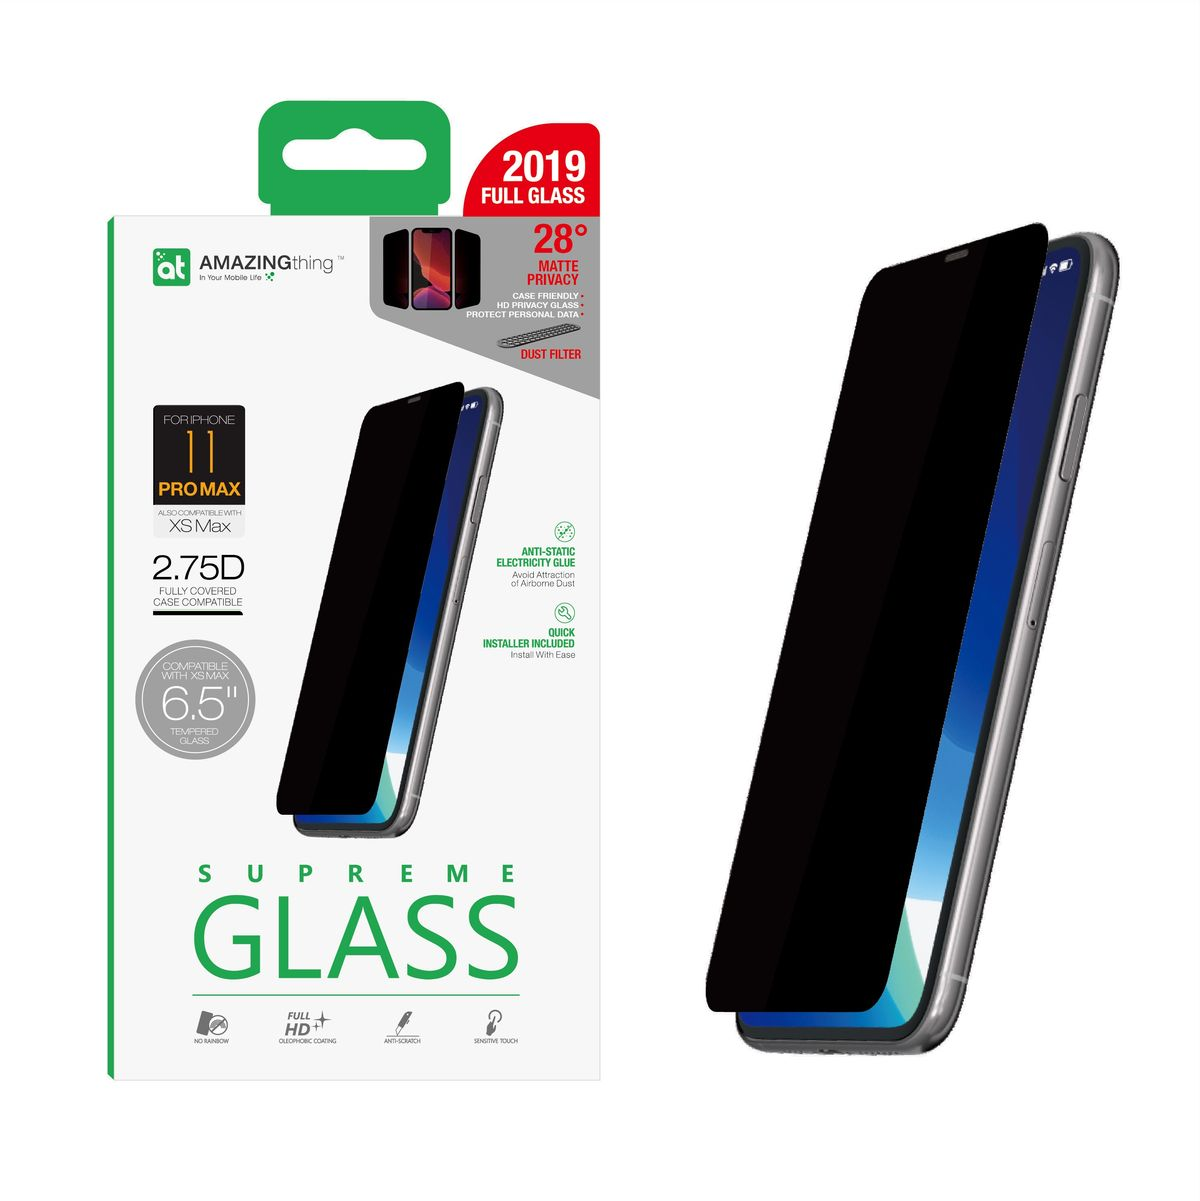 Amazing Thing 0.3M 2.75D Matte Privacy Screen Protector Black for iPhone 11 Pro Max with Installer